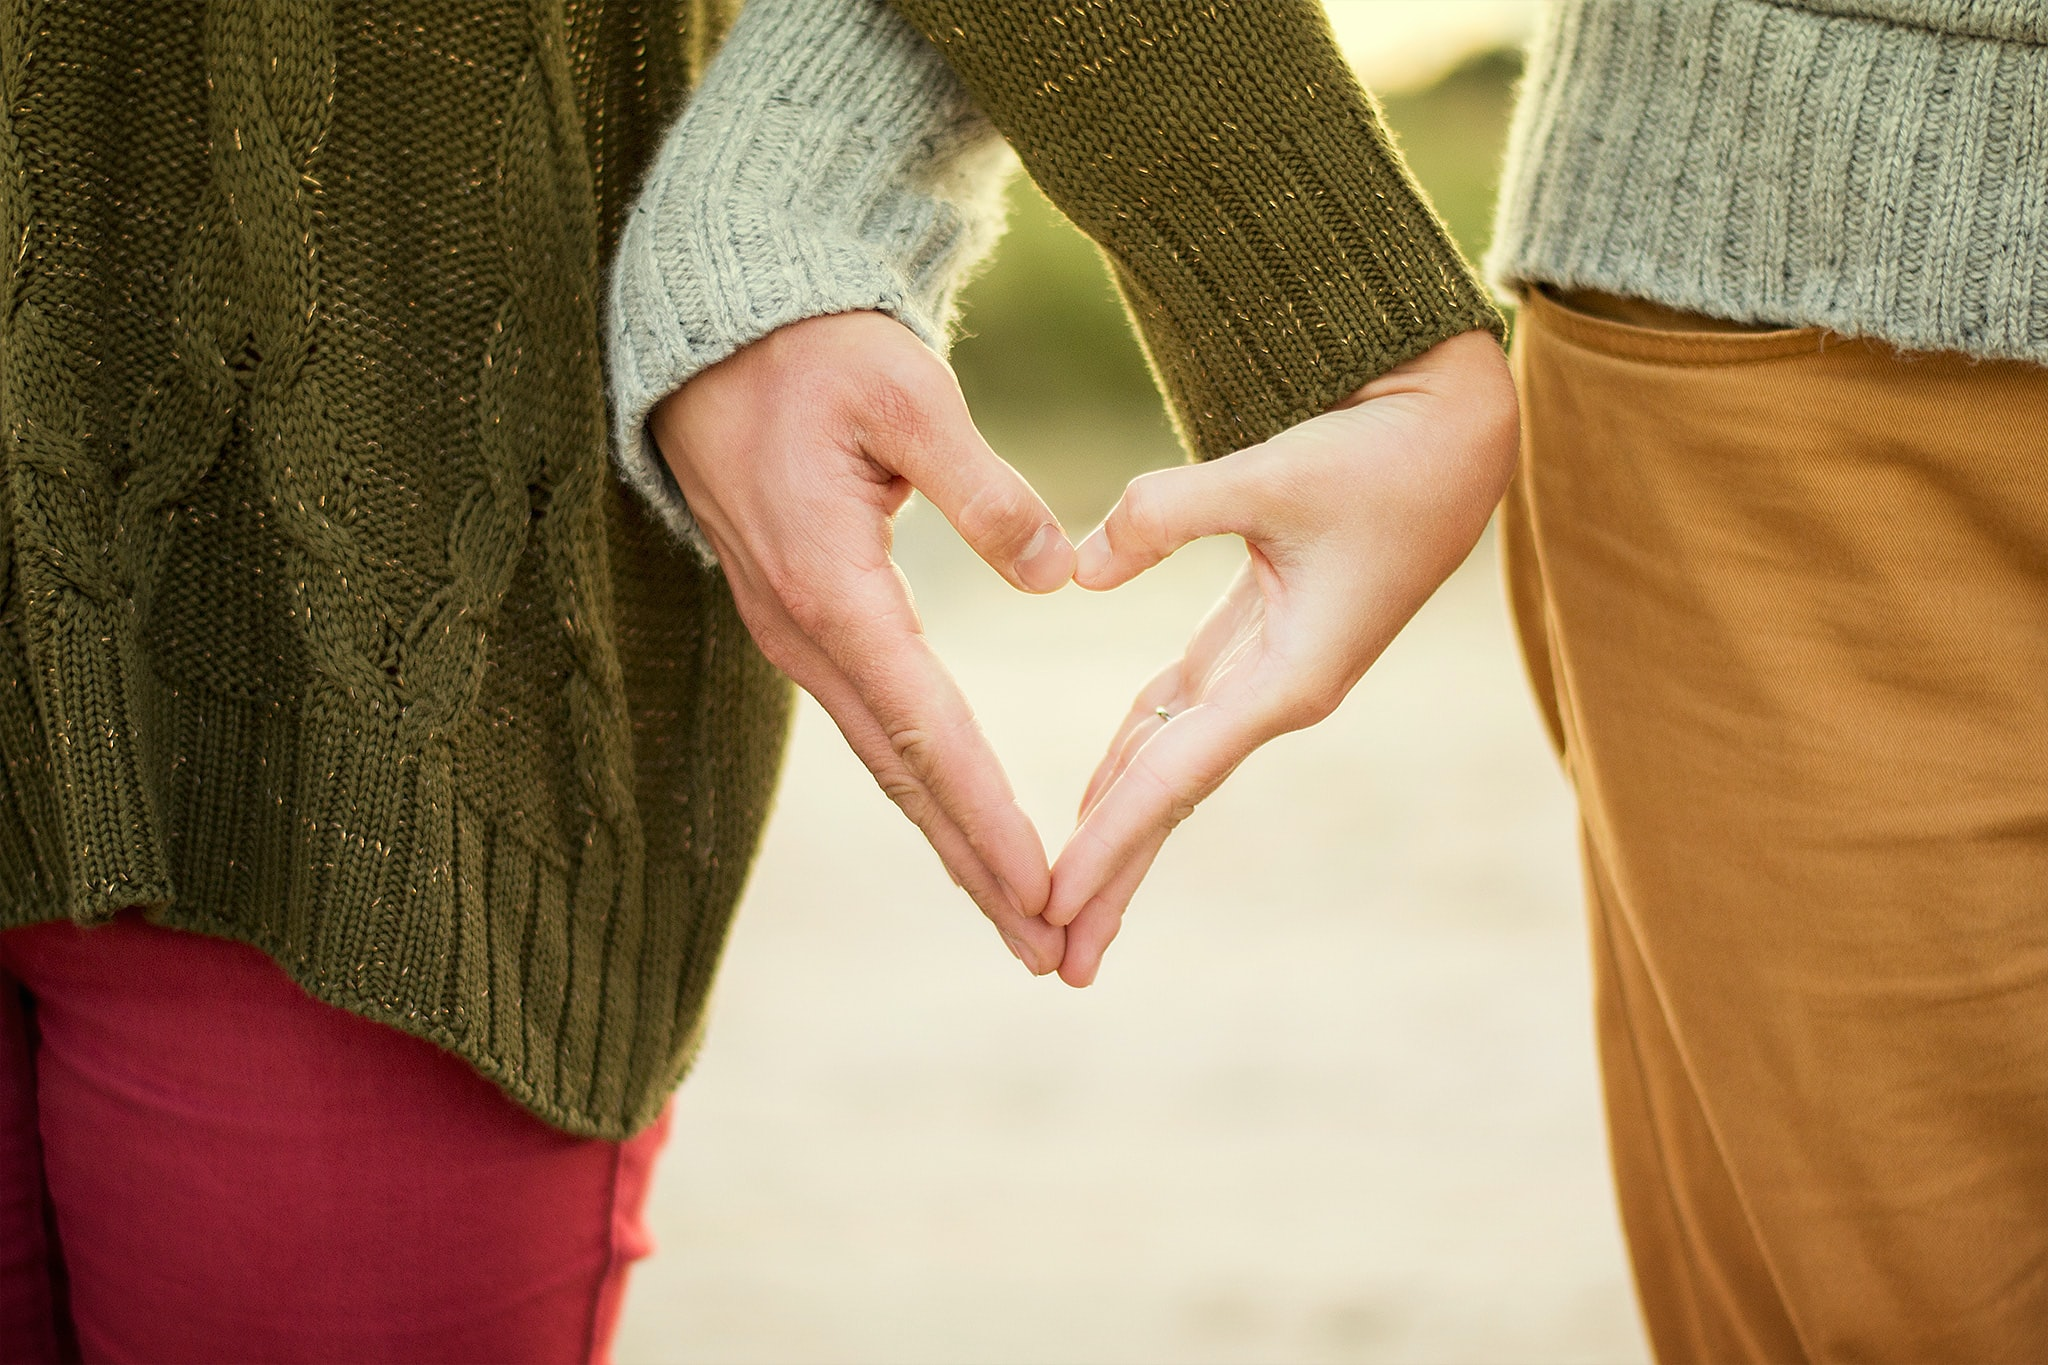 Close-up of couple's hands intertwined to create a heart shape